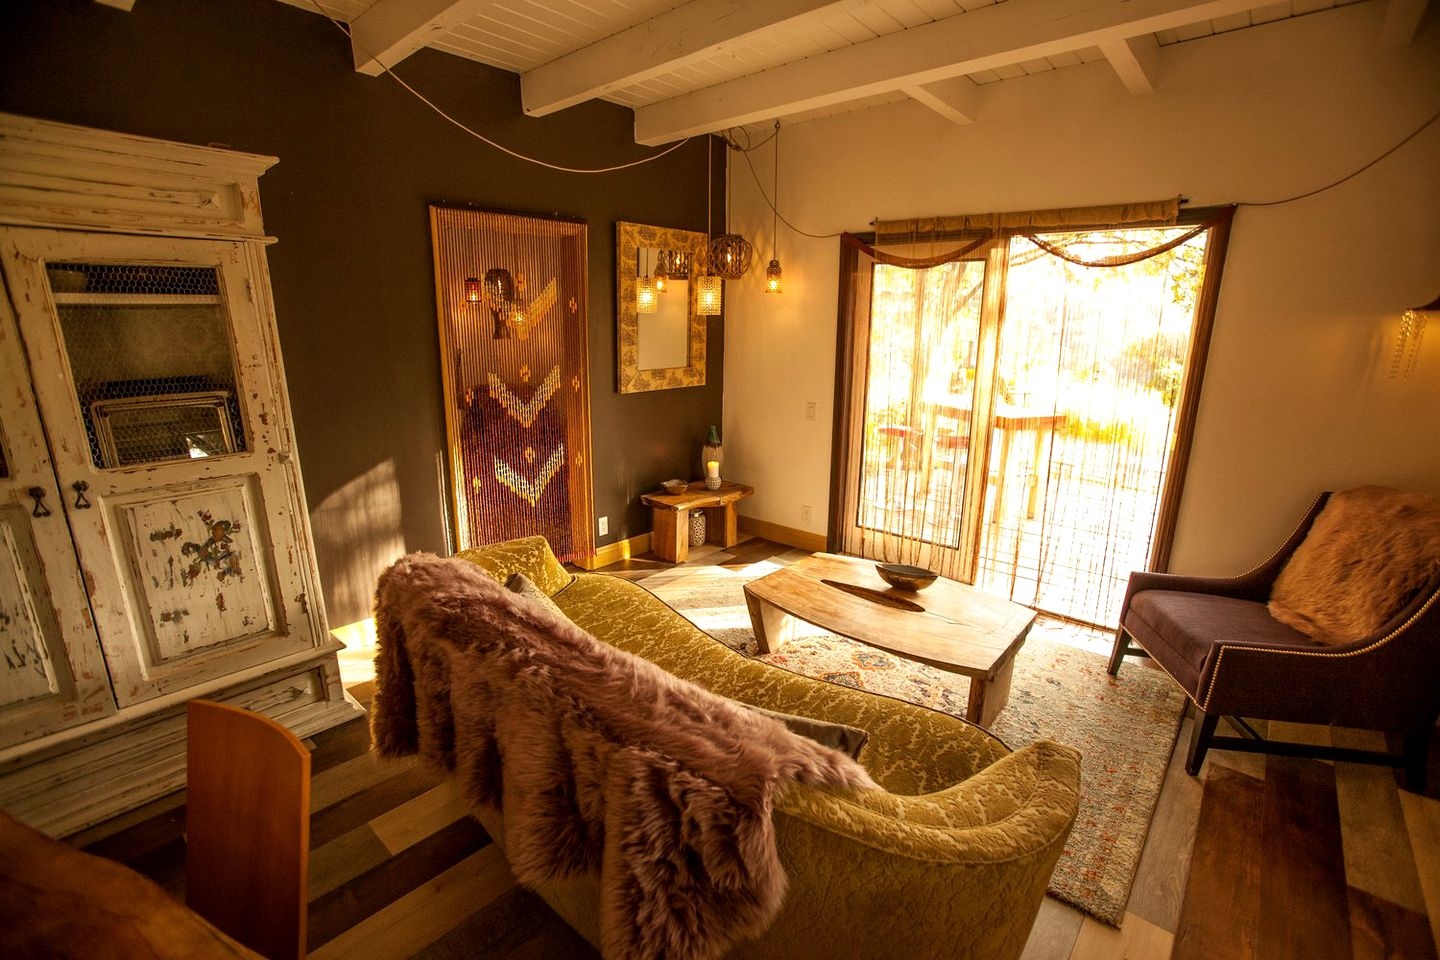 This Topanga accommodation is ideal for a romantic getaway near Los Angeles